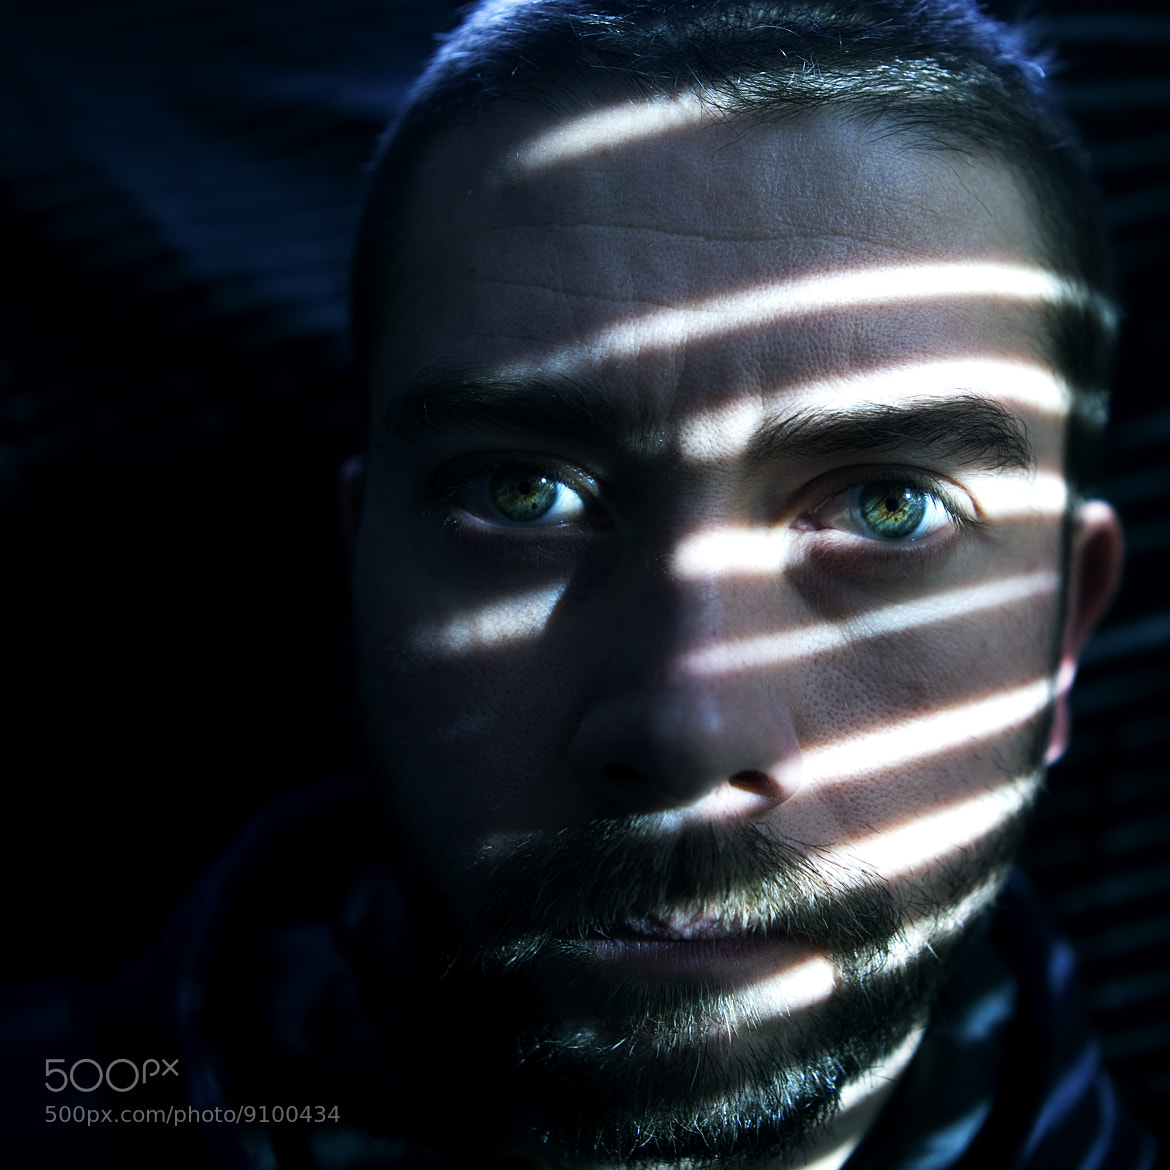 Photograph Self Portrait by Anthony Dorman on 500px